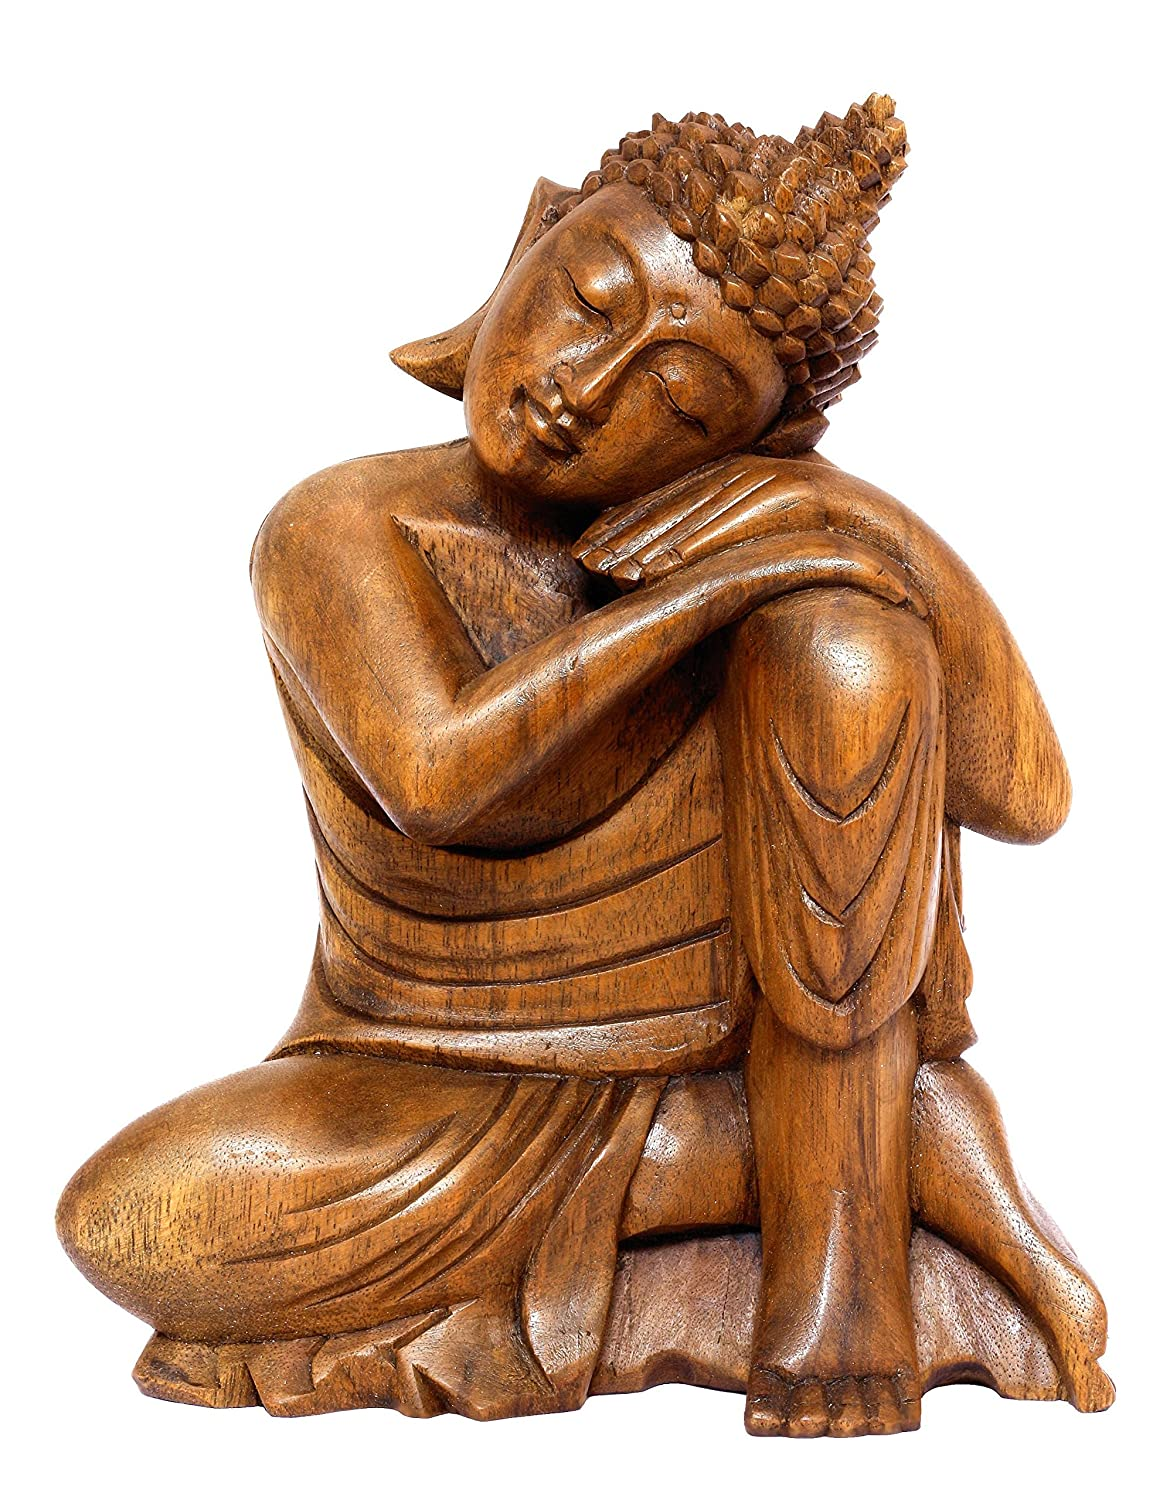 "G6 Collection 11"" Wooden Serene Resting Sleeping Buddha Statue Hand Carved Sitting Buddha Sculpture Handmade Figurine Decorative Home Decor Accent Handcrafted Traditional Modern Decoration (Medium)"